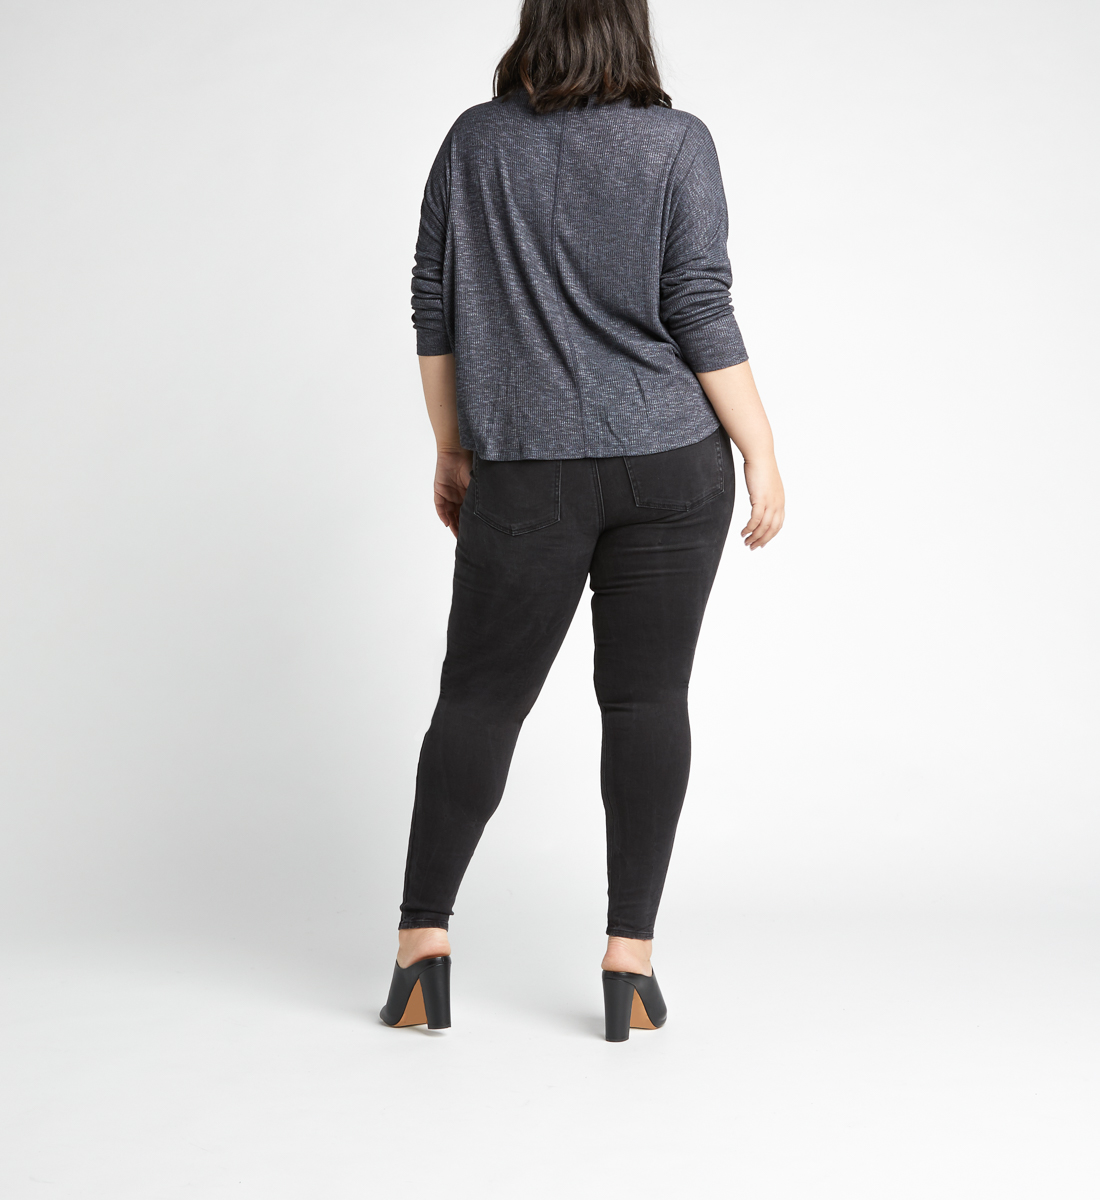 Amelia Button-Front Top Plus Size,Charcoal Side